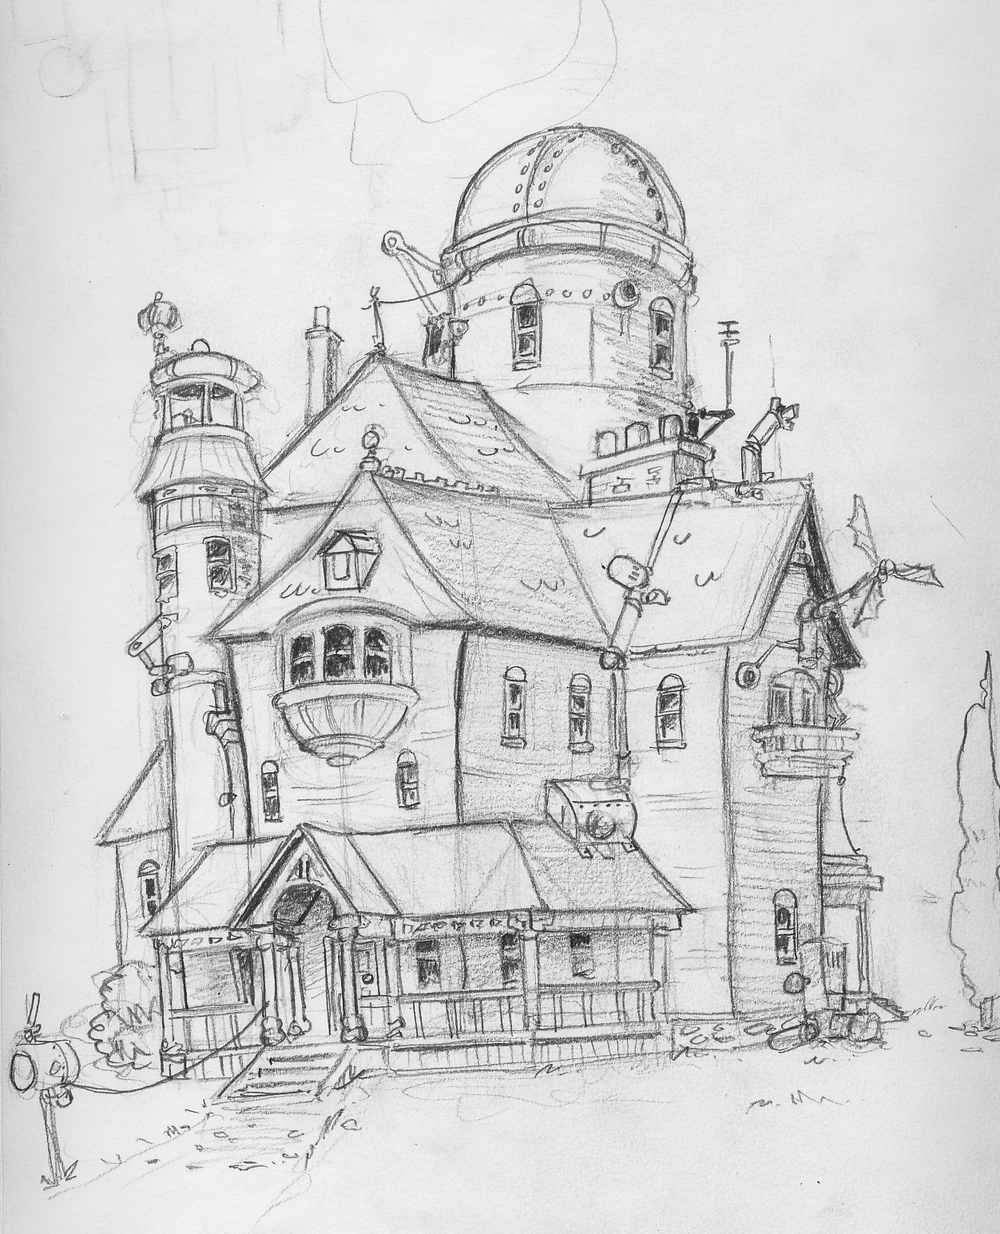 sketches_hercs_house2.jpg